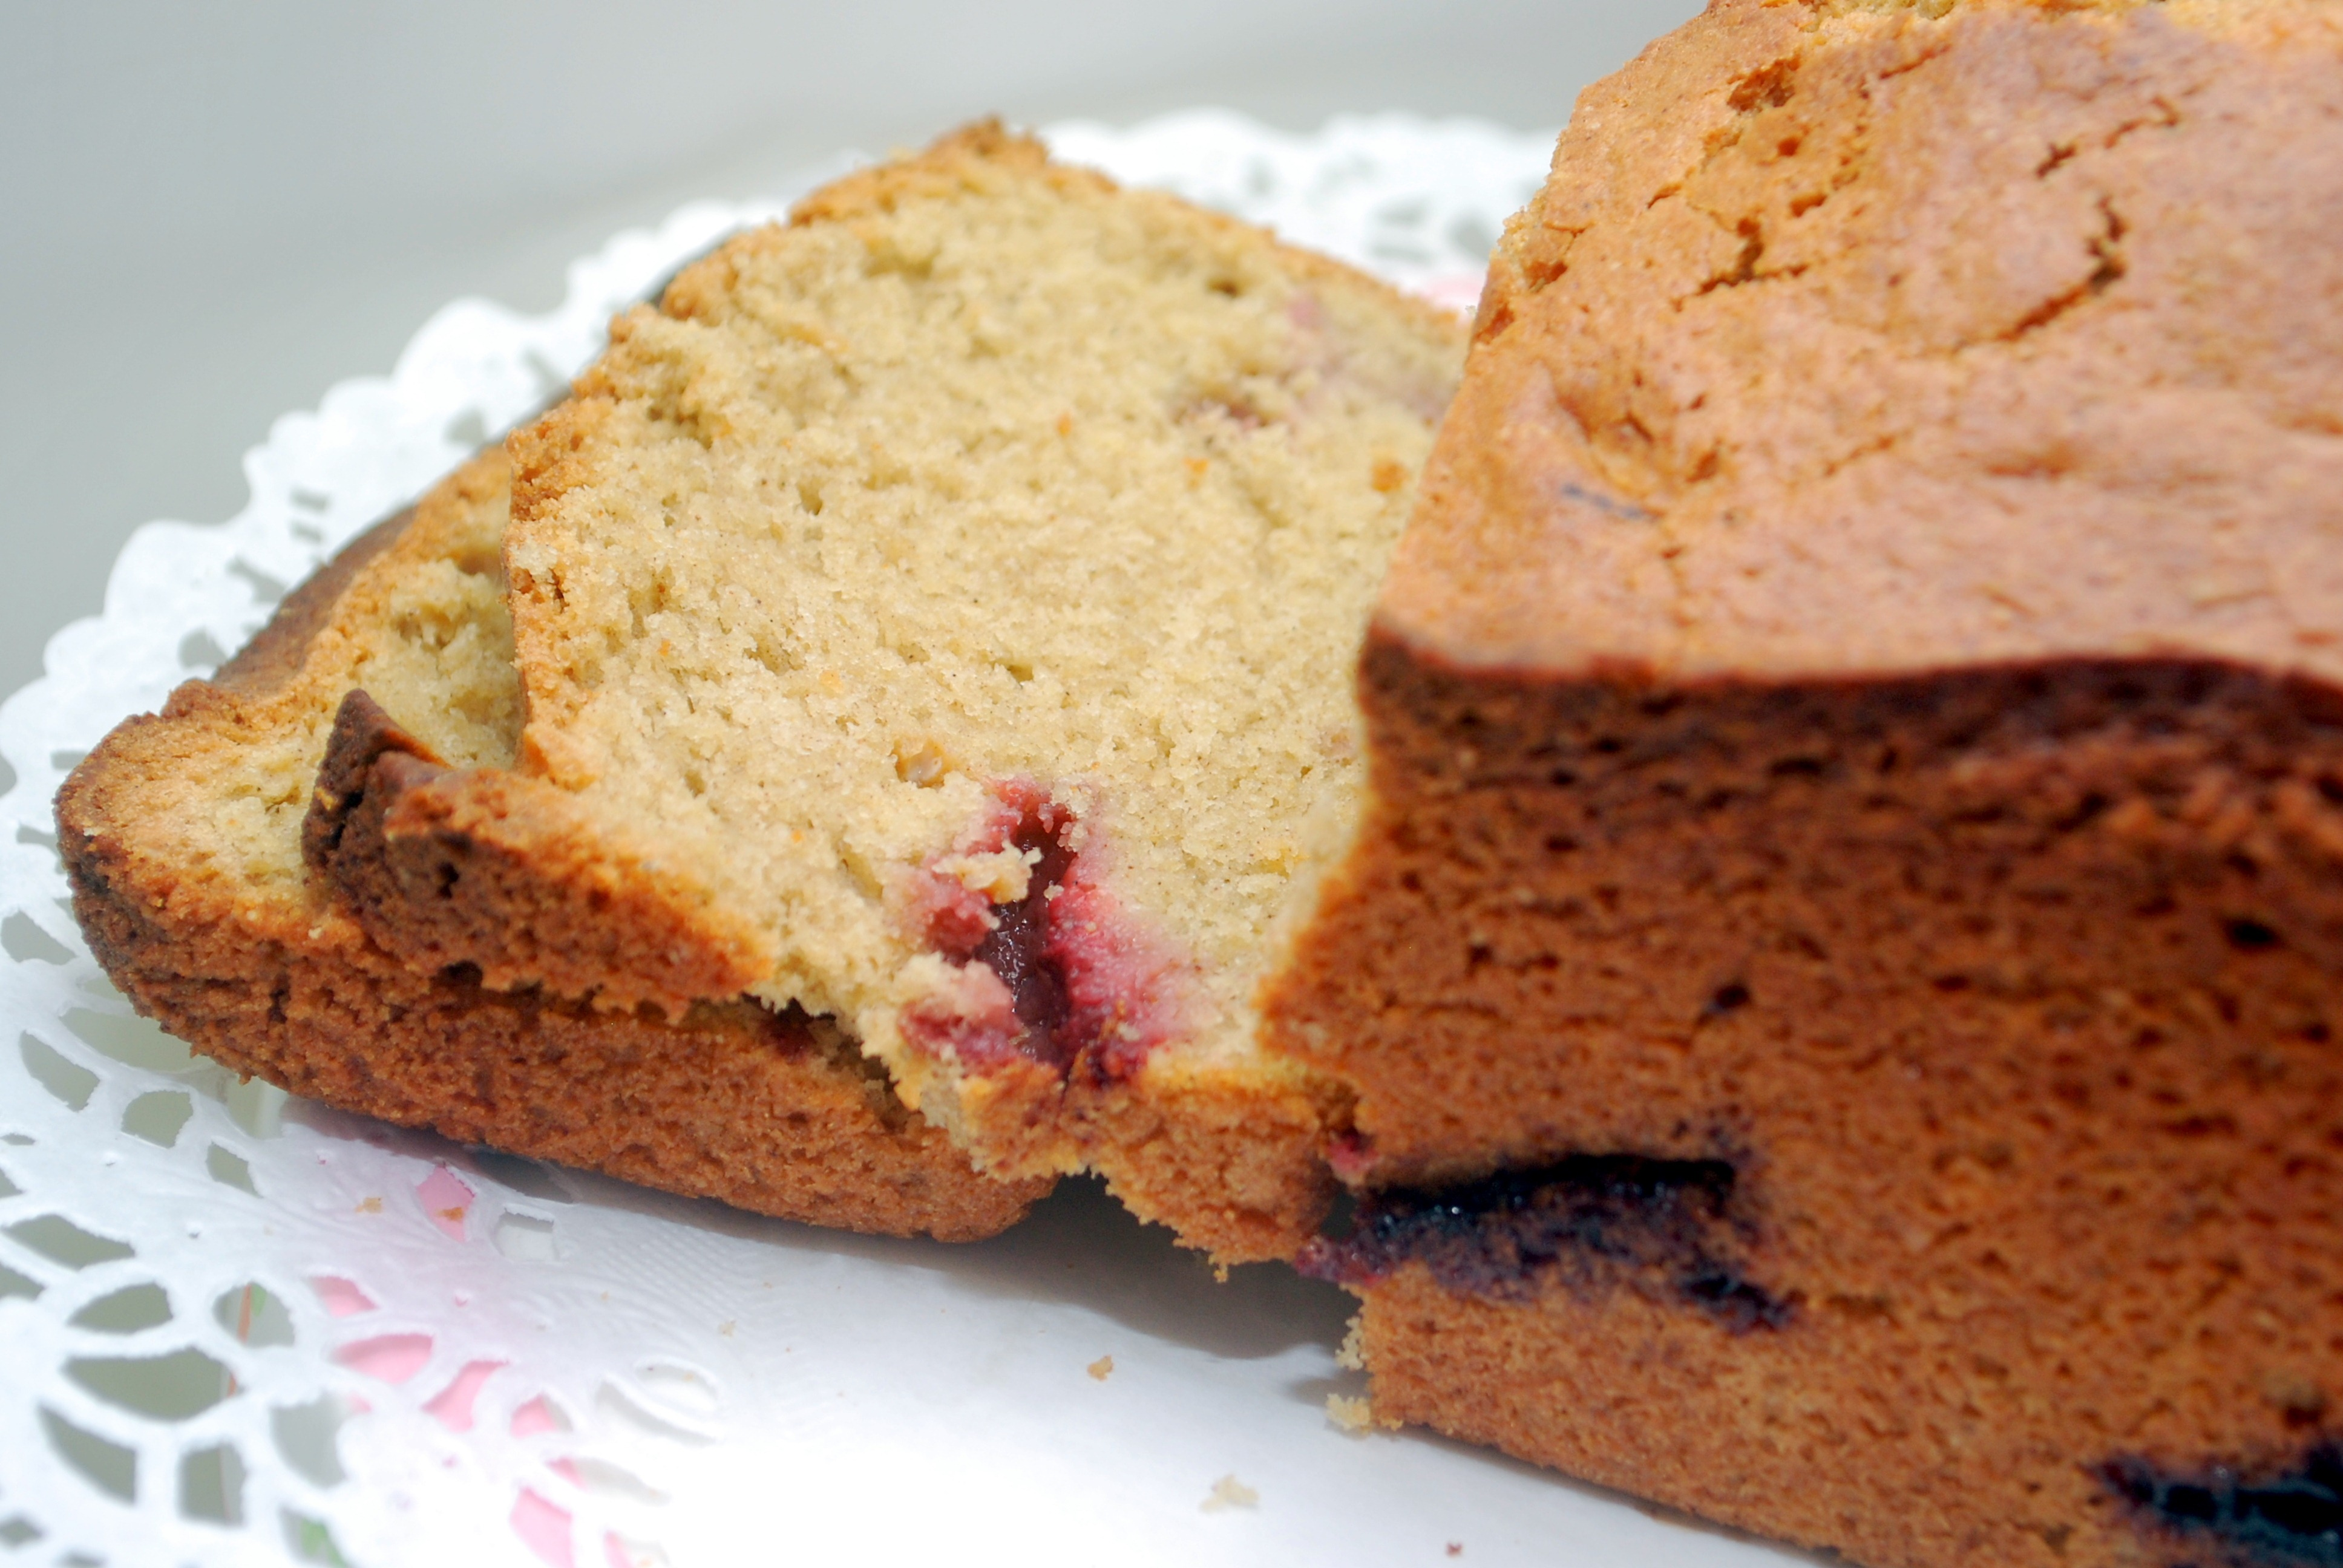 What's your favorite loaf bread/cake recipe?